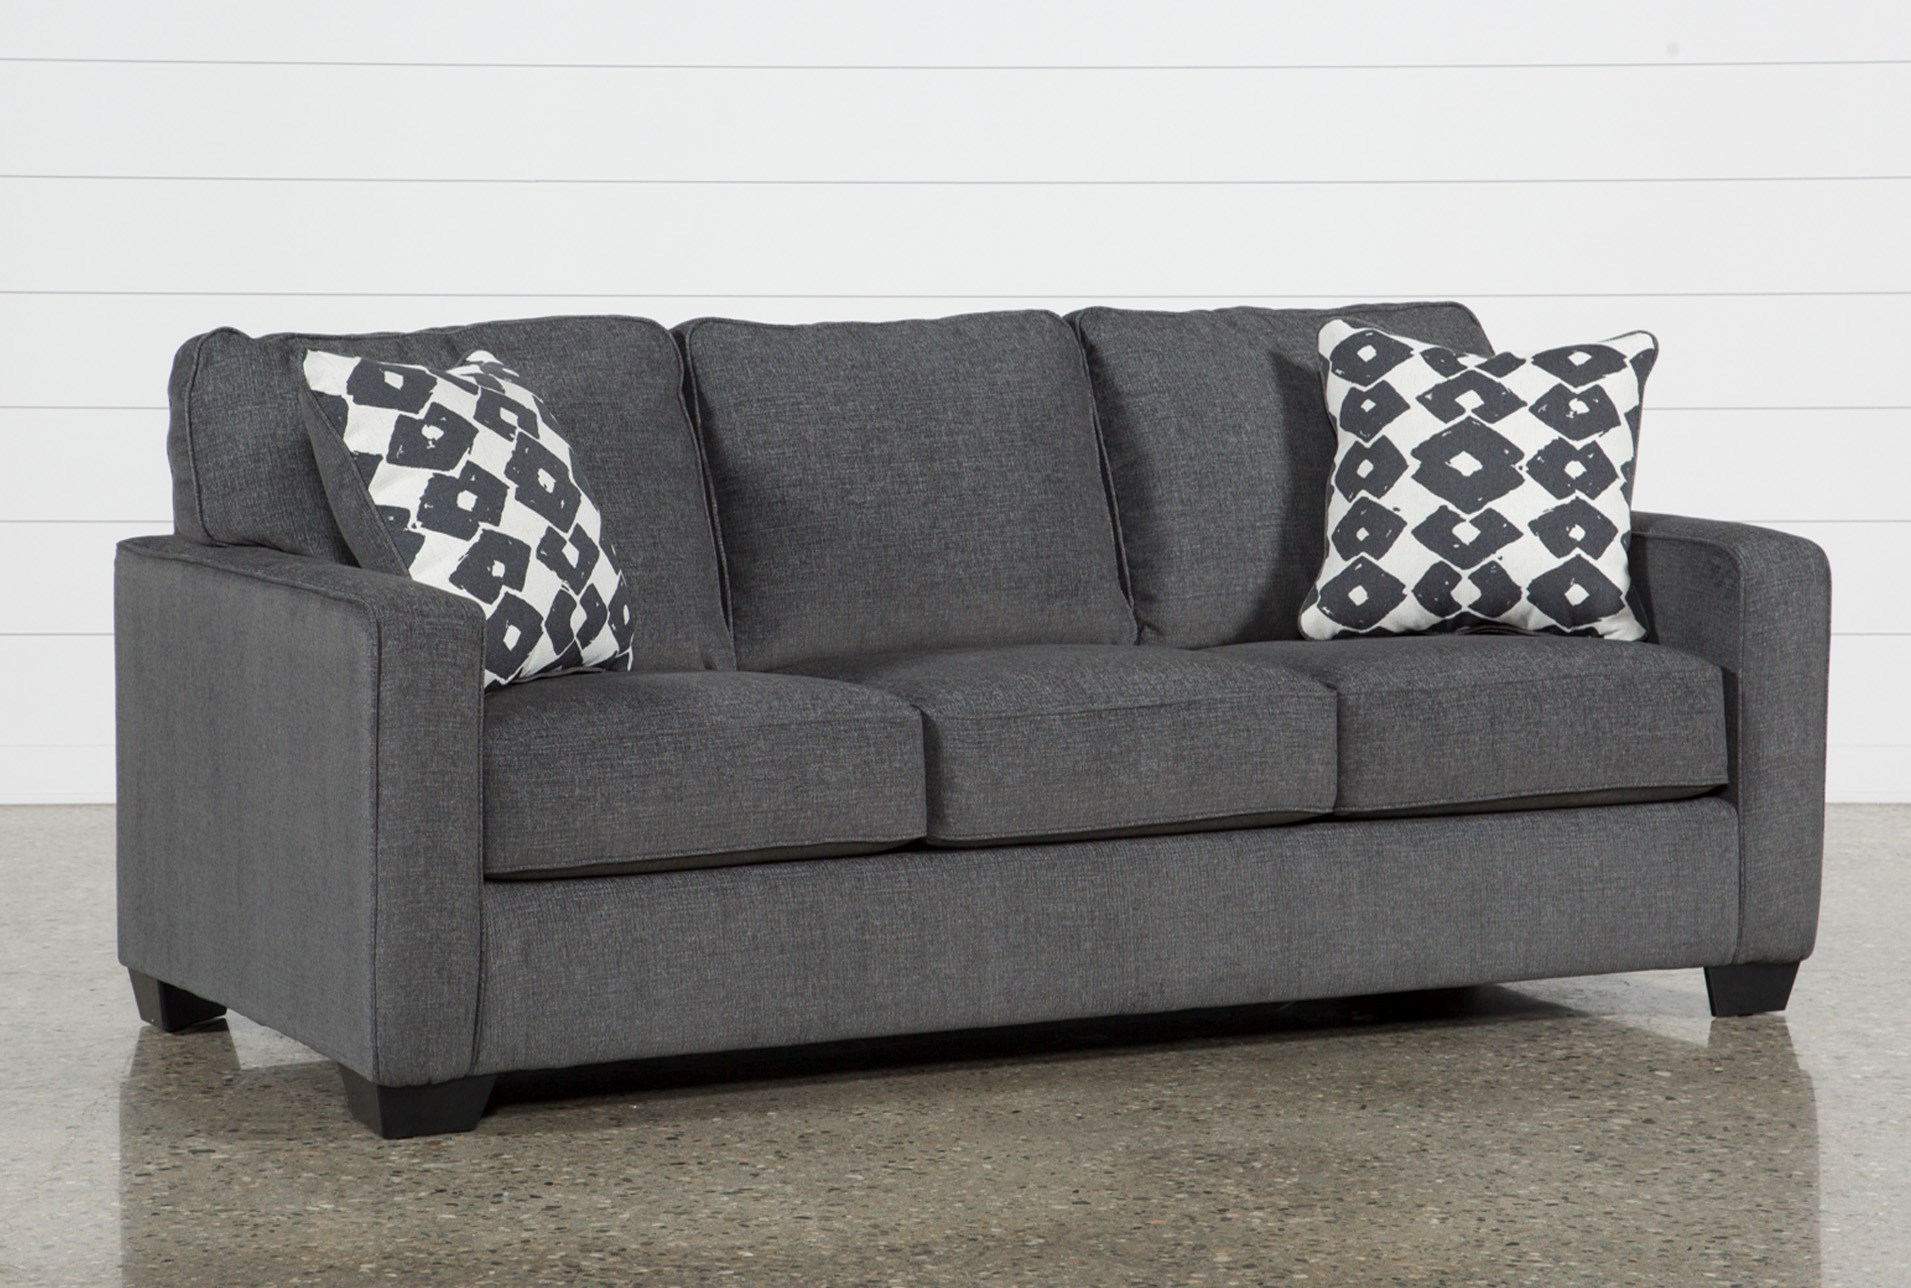 Ur Queen Sofa Sleeper Qty 1 Has Been Successfully Added To Your Cart